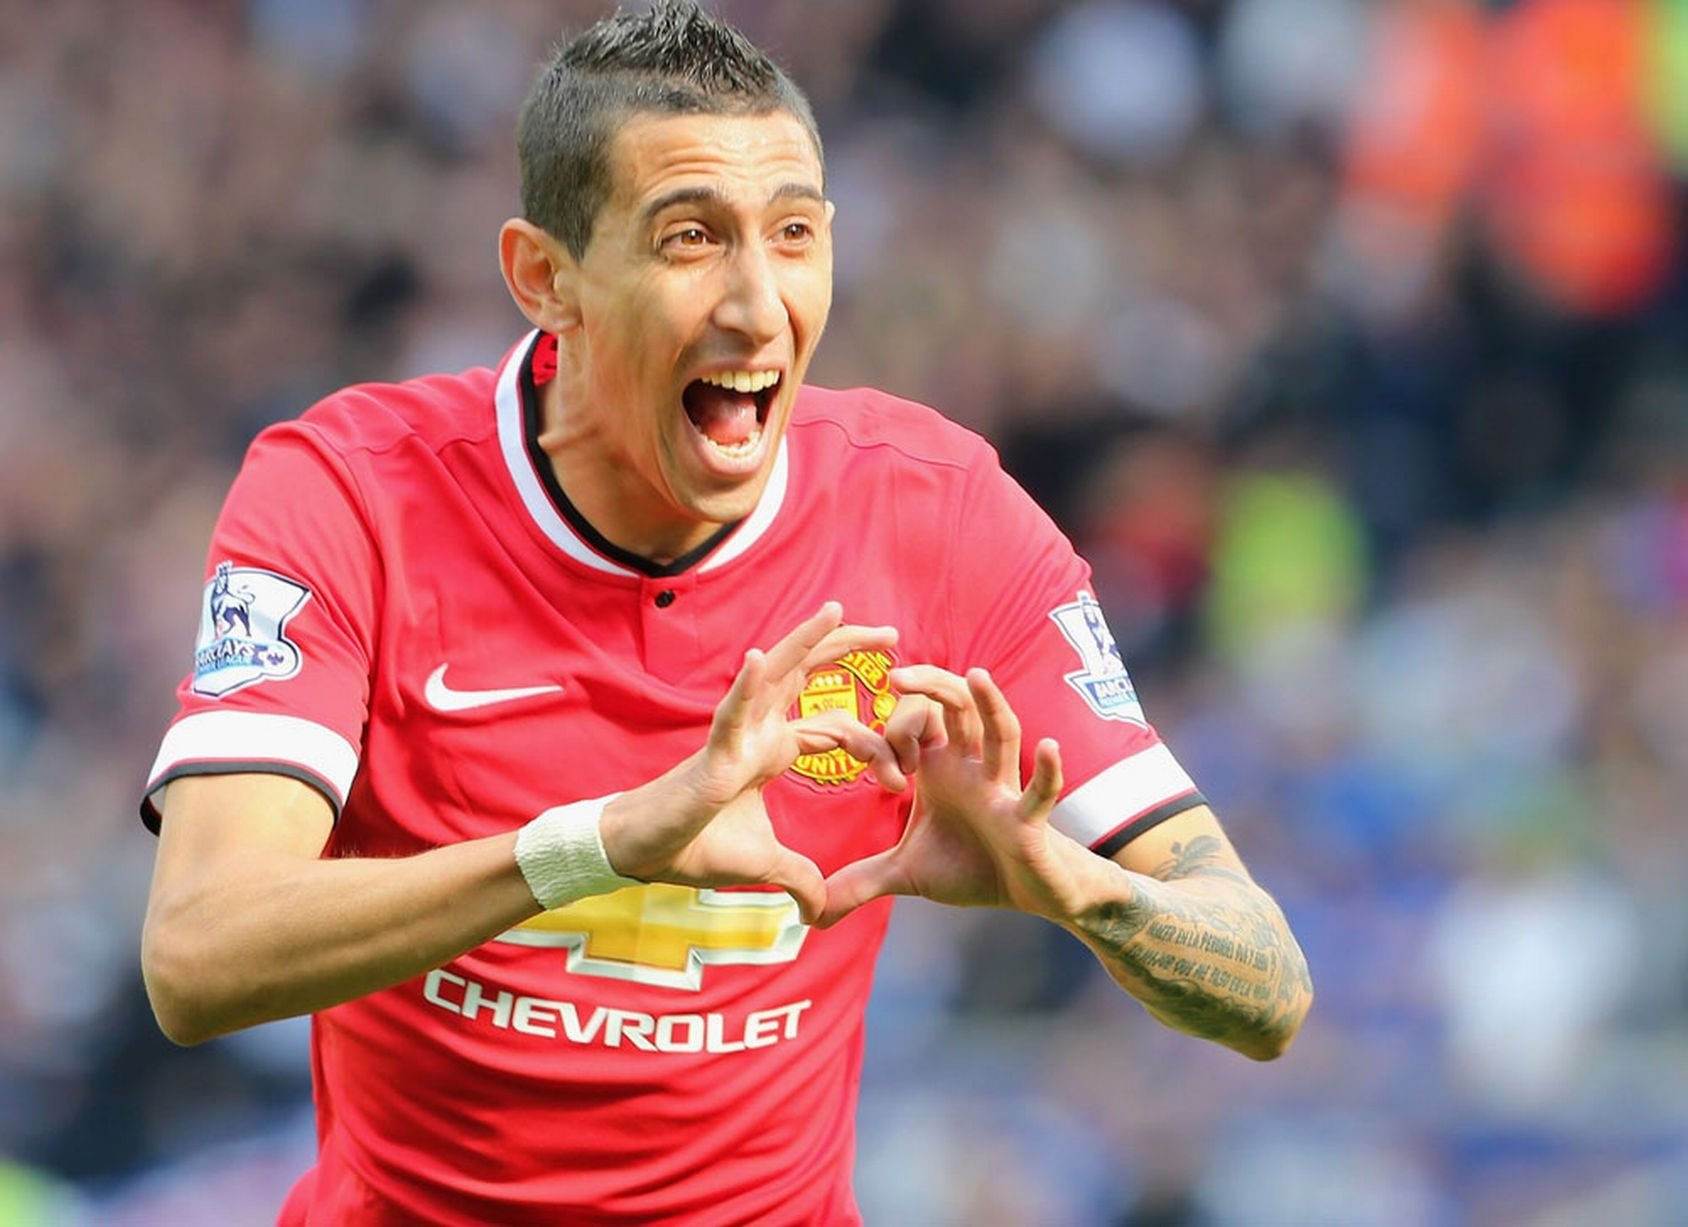 An open letter to Manchester United fans from Angel di Mara